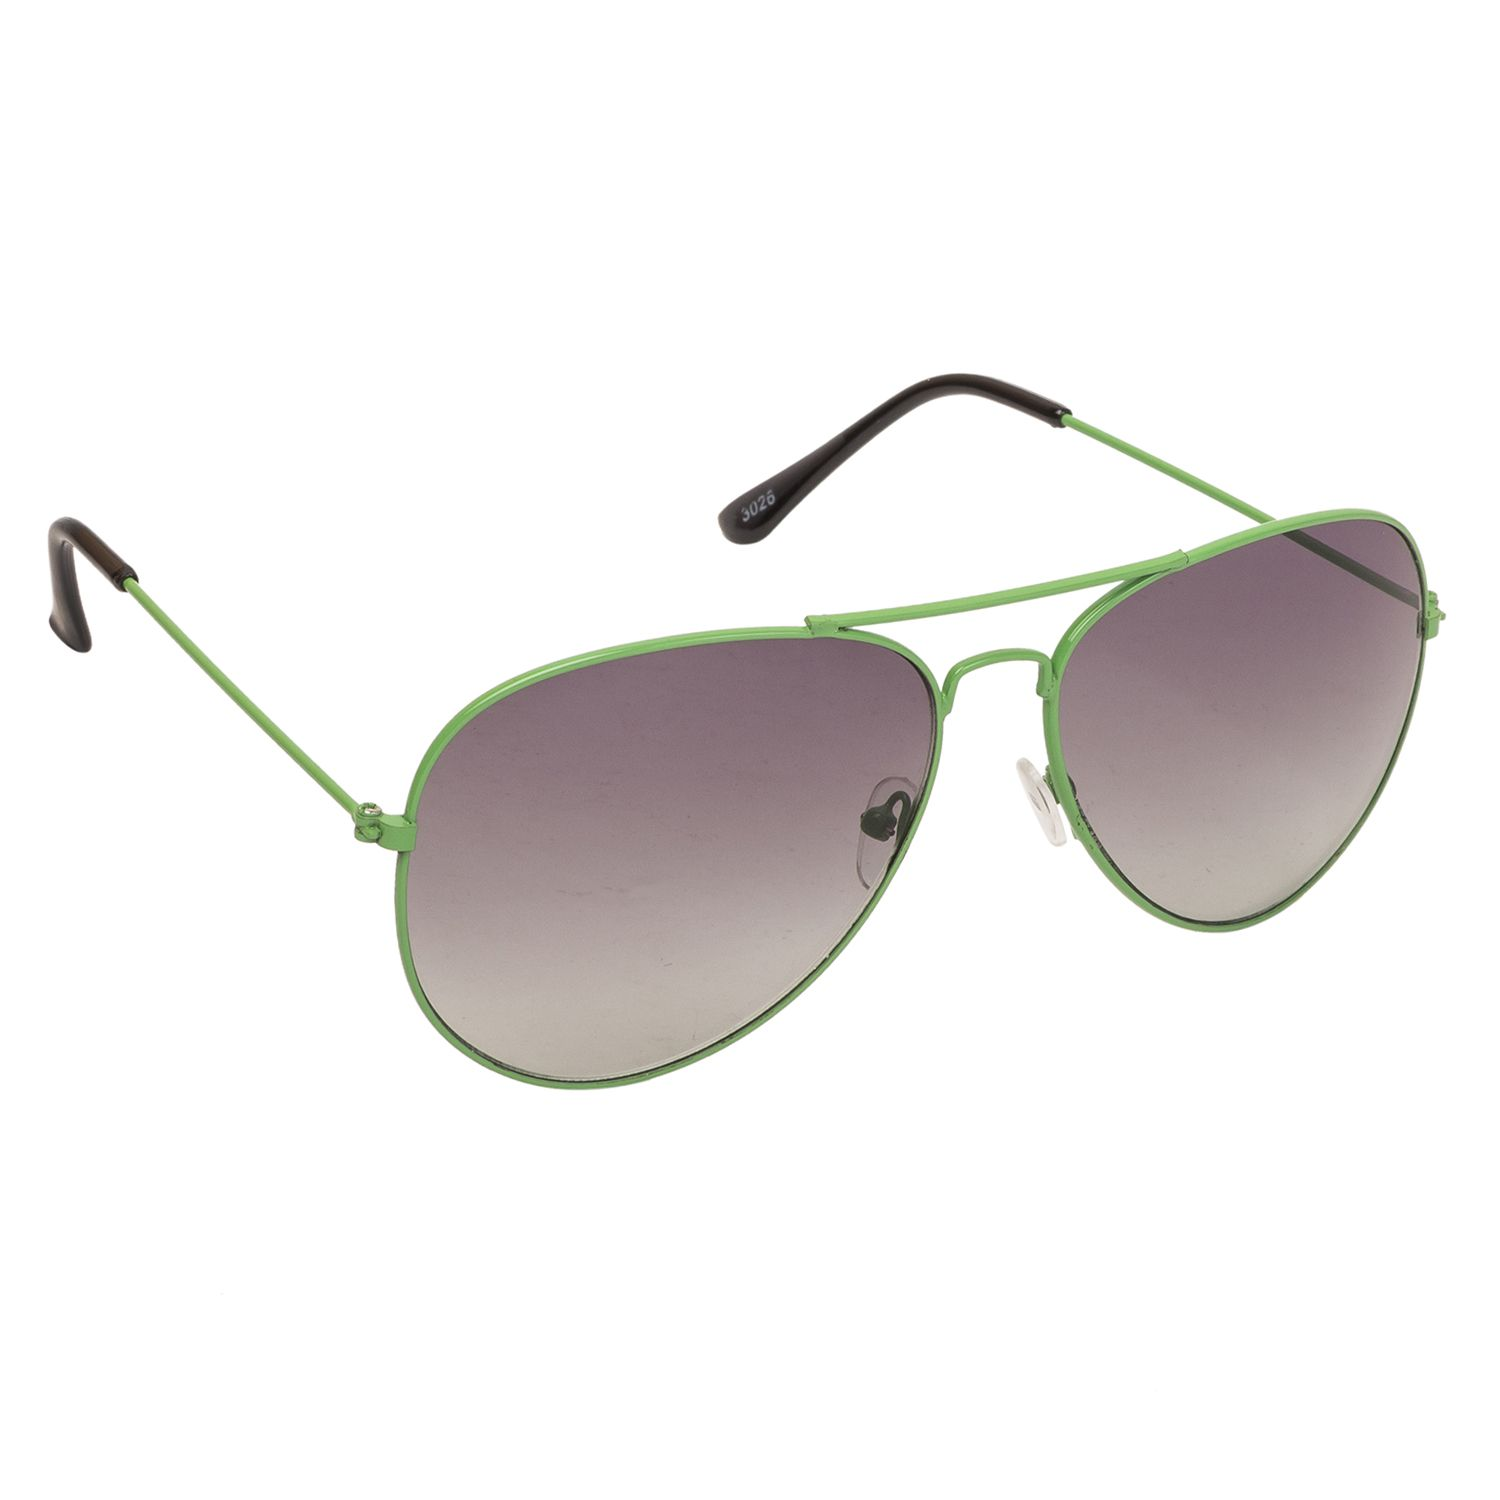 Arzonai Black Aviator Sunglasses ( MA-007-S5 )